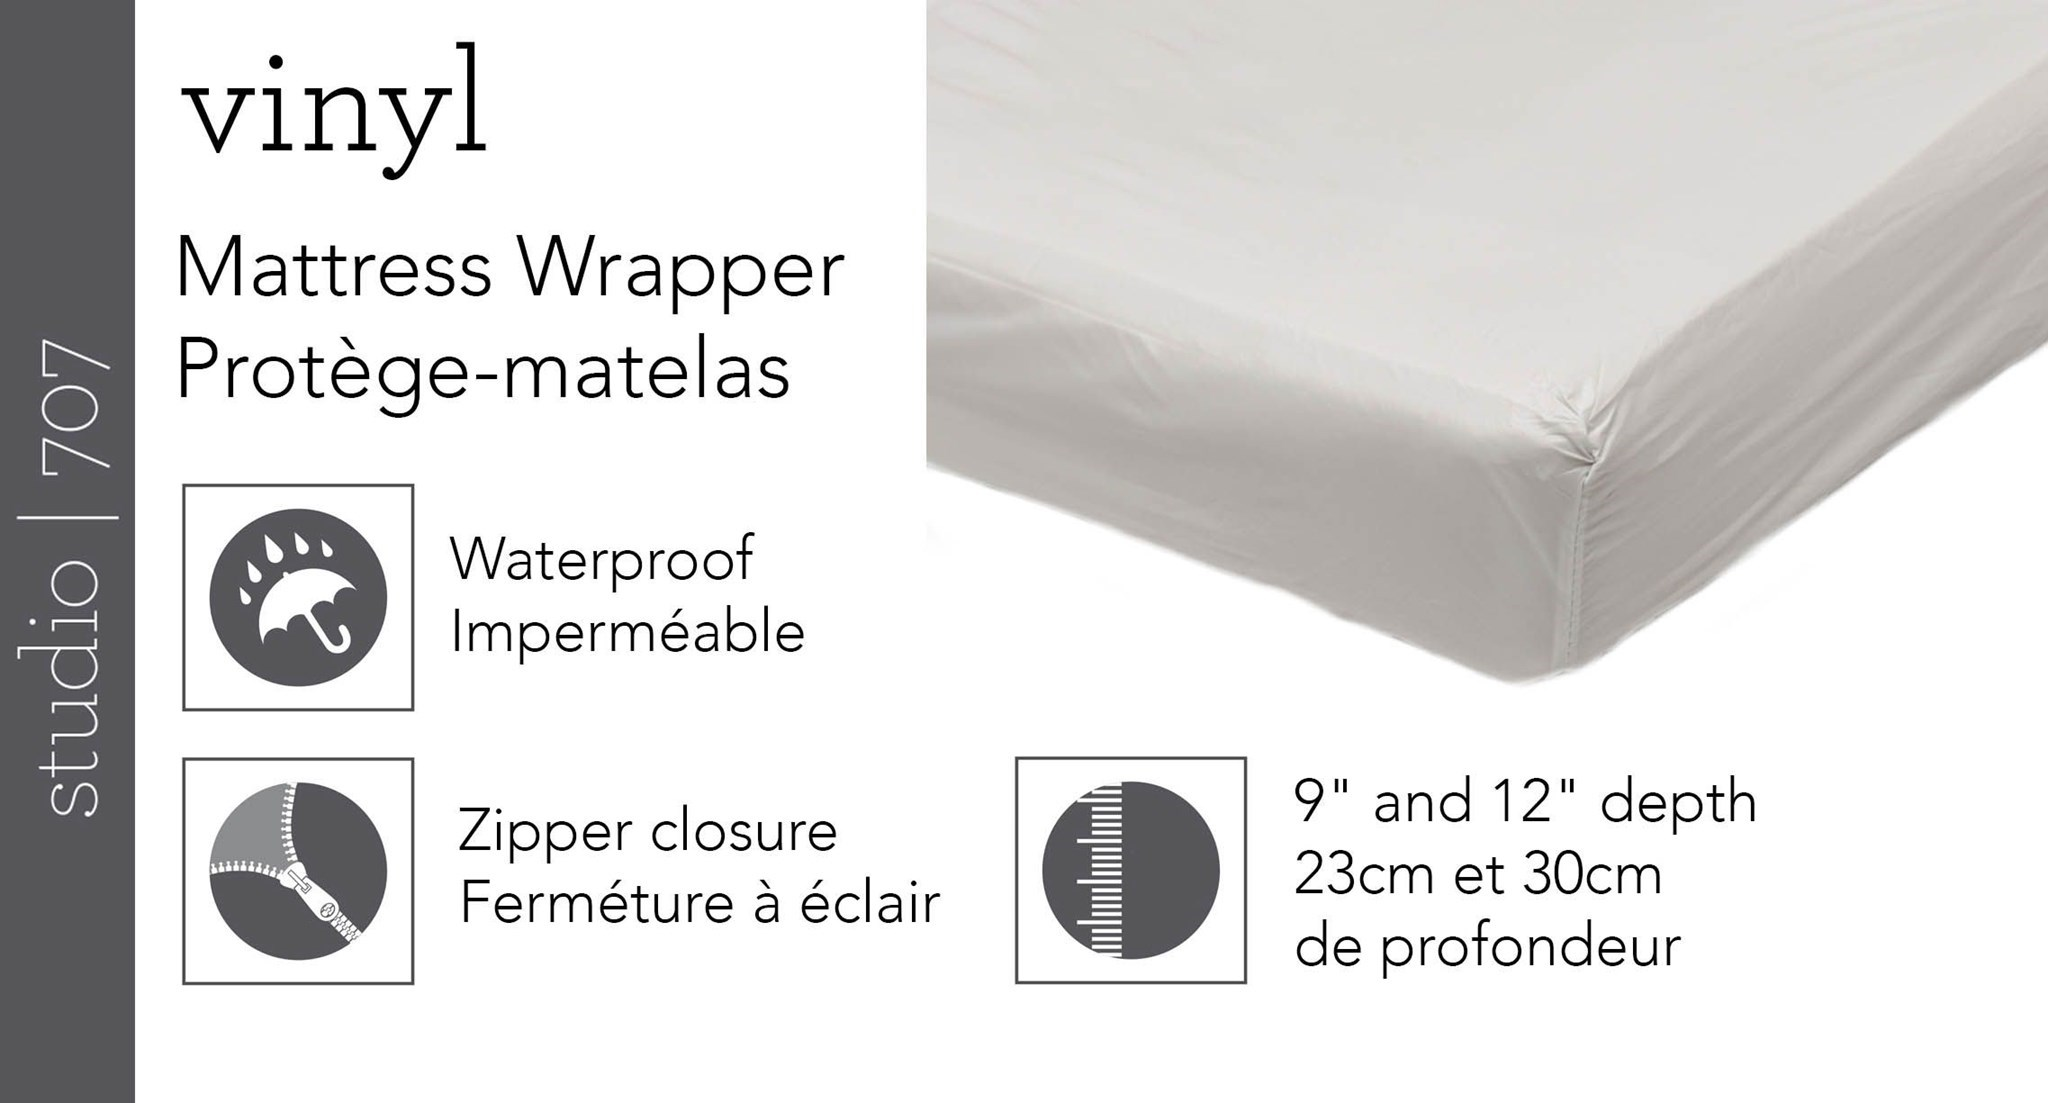 Water Proof Impermeable Marimac Group